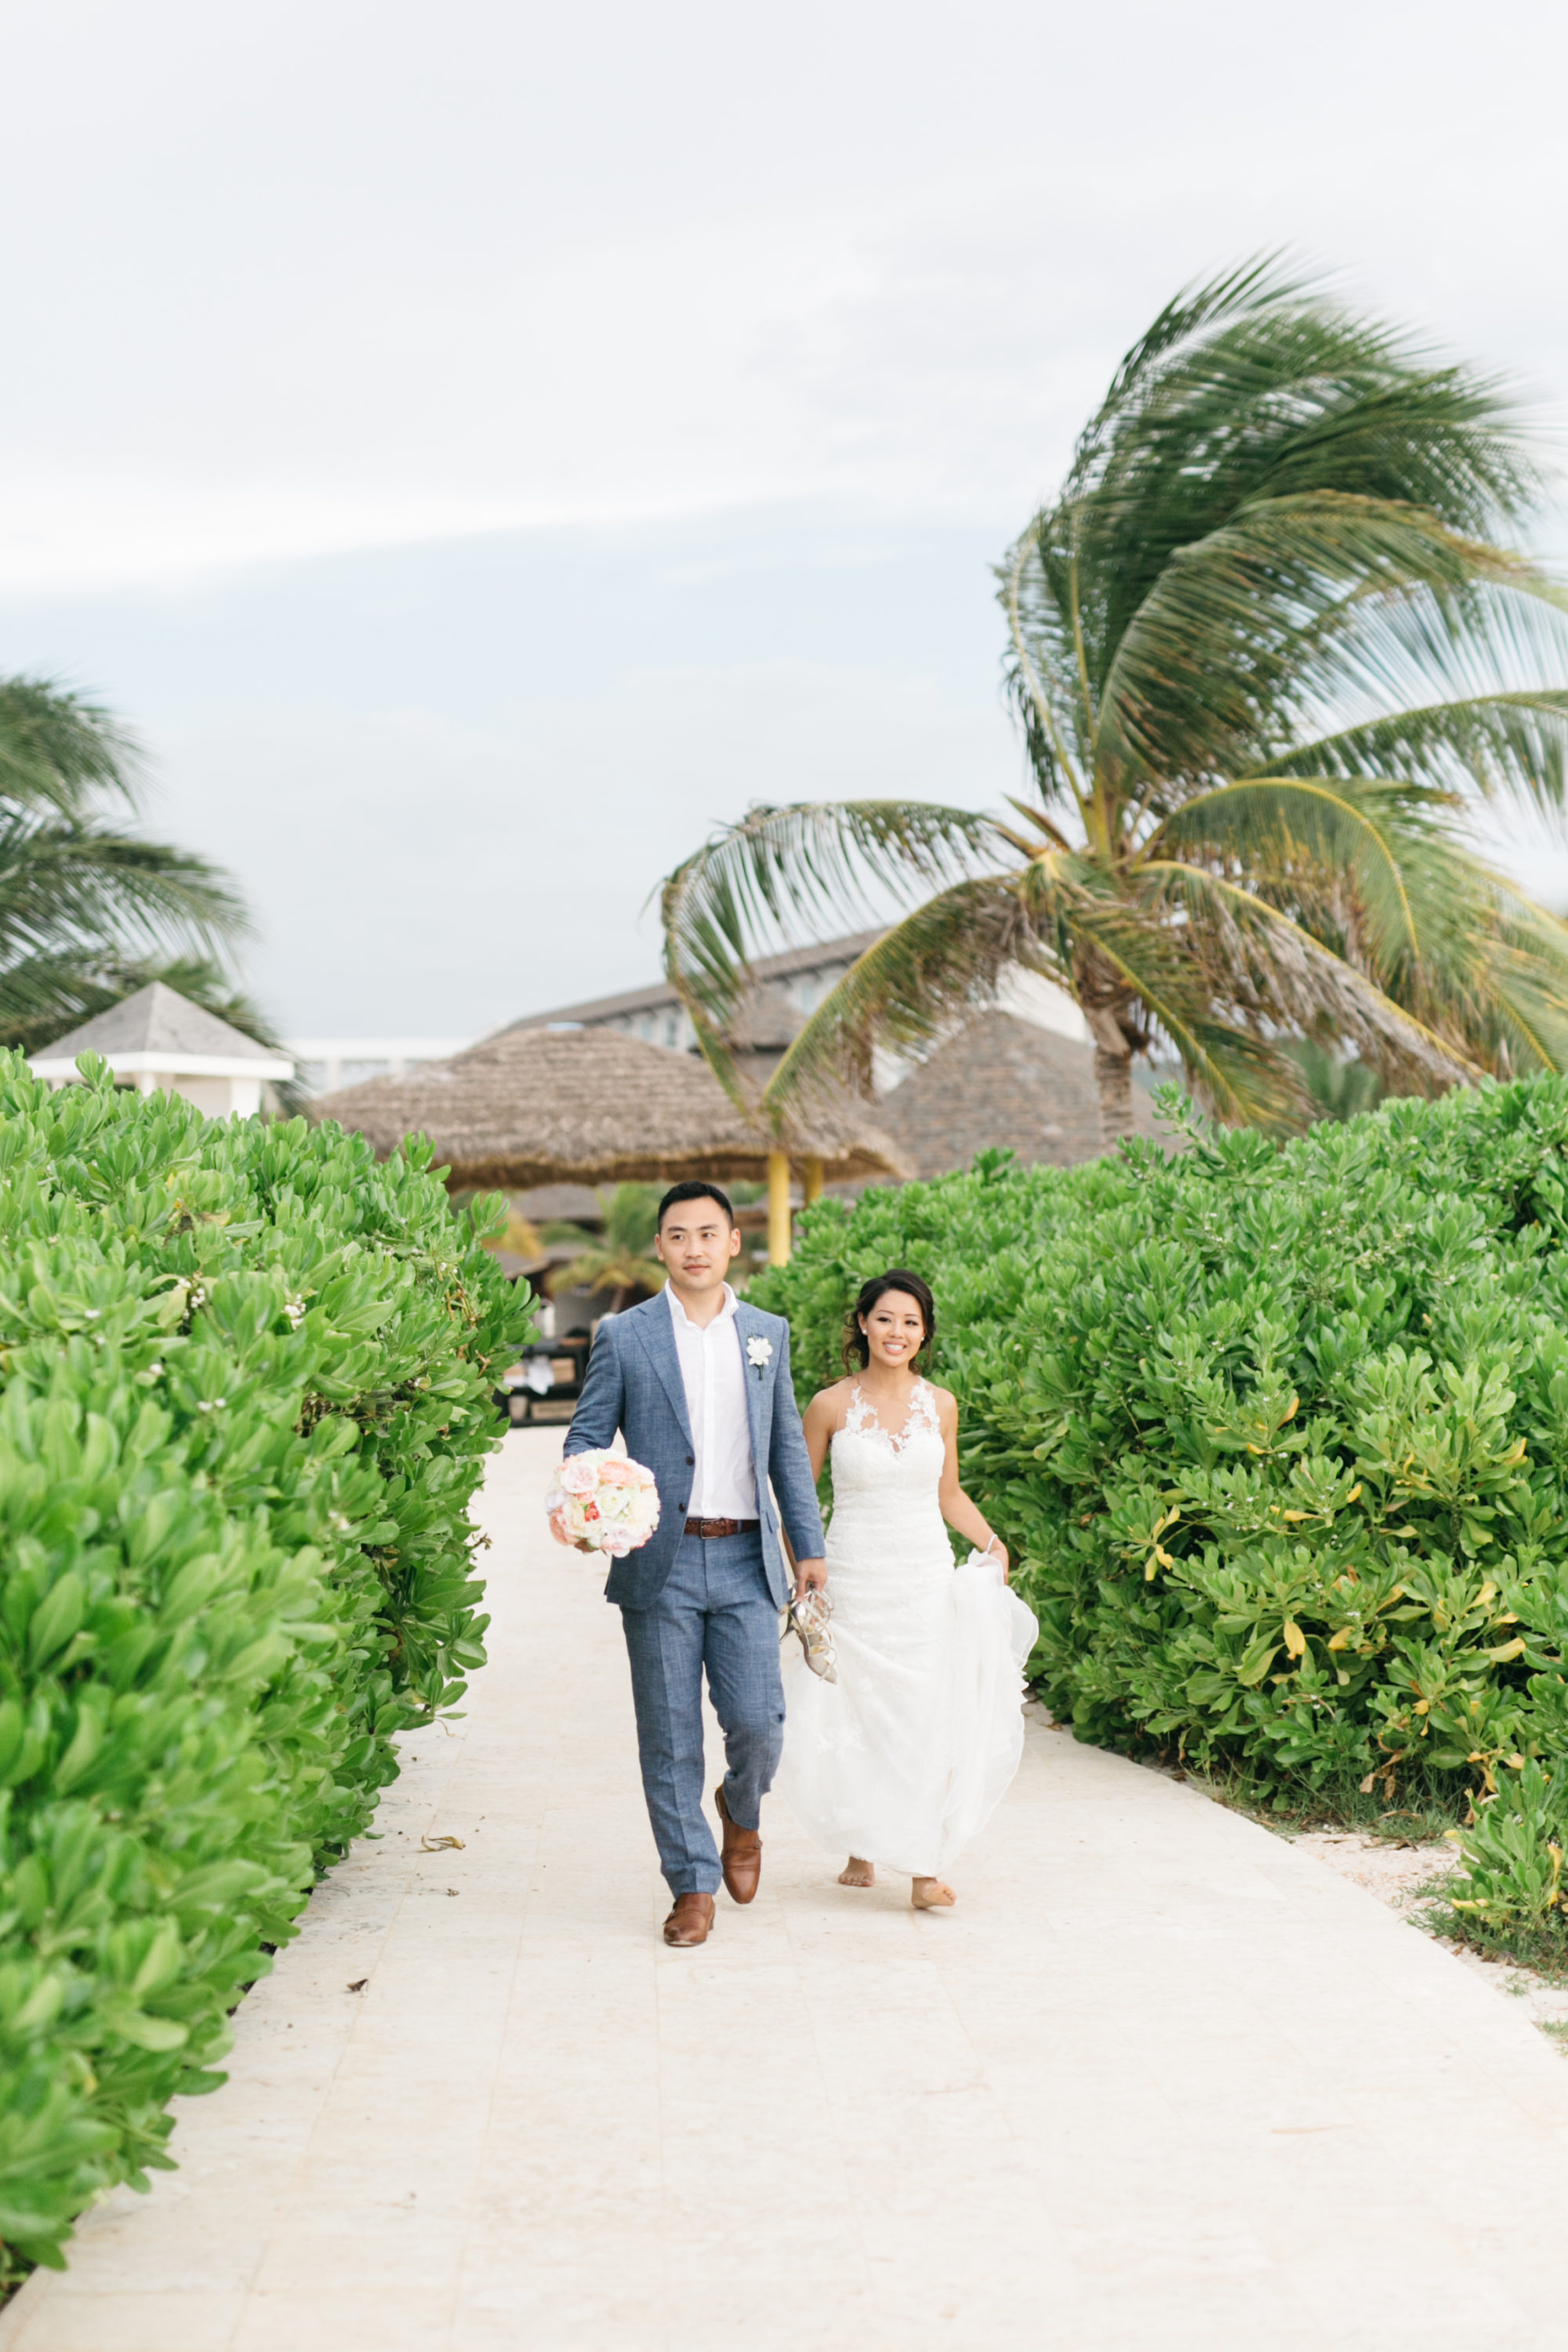 Bride and groom walking on Royalton White Sands Resort